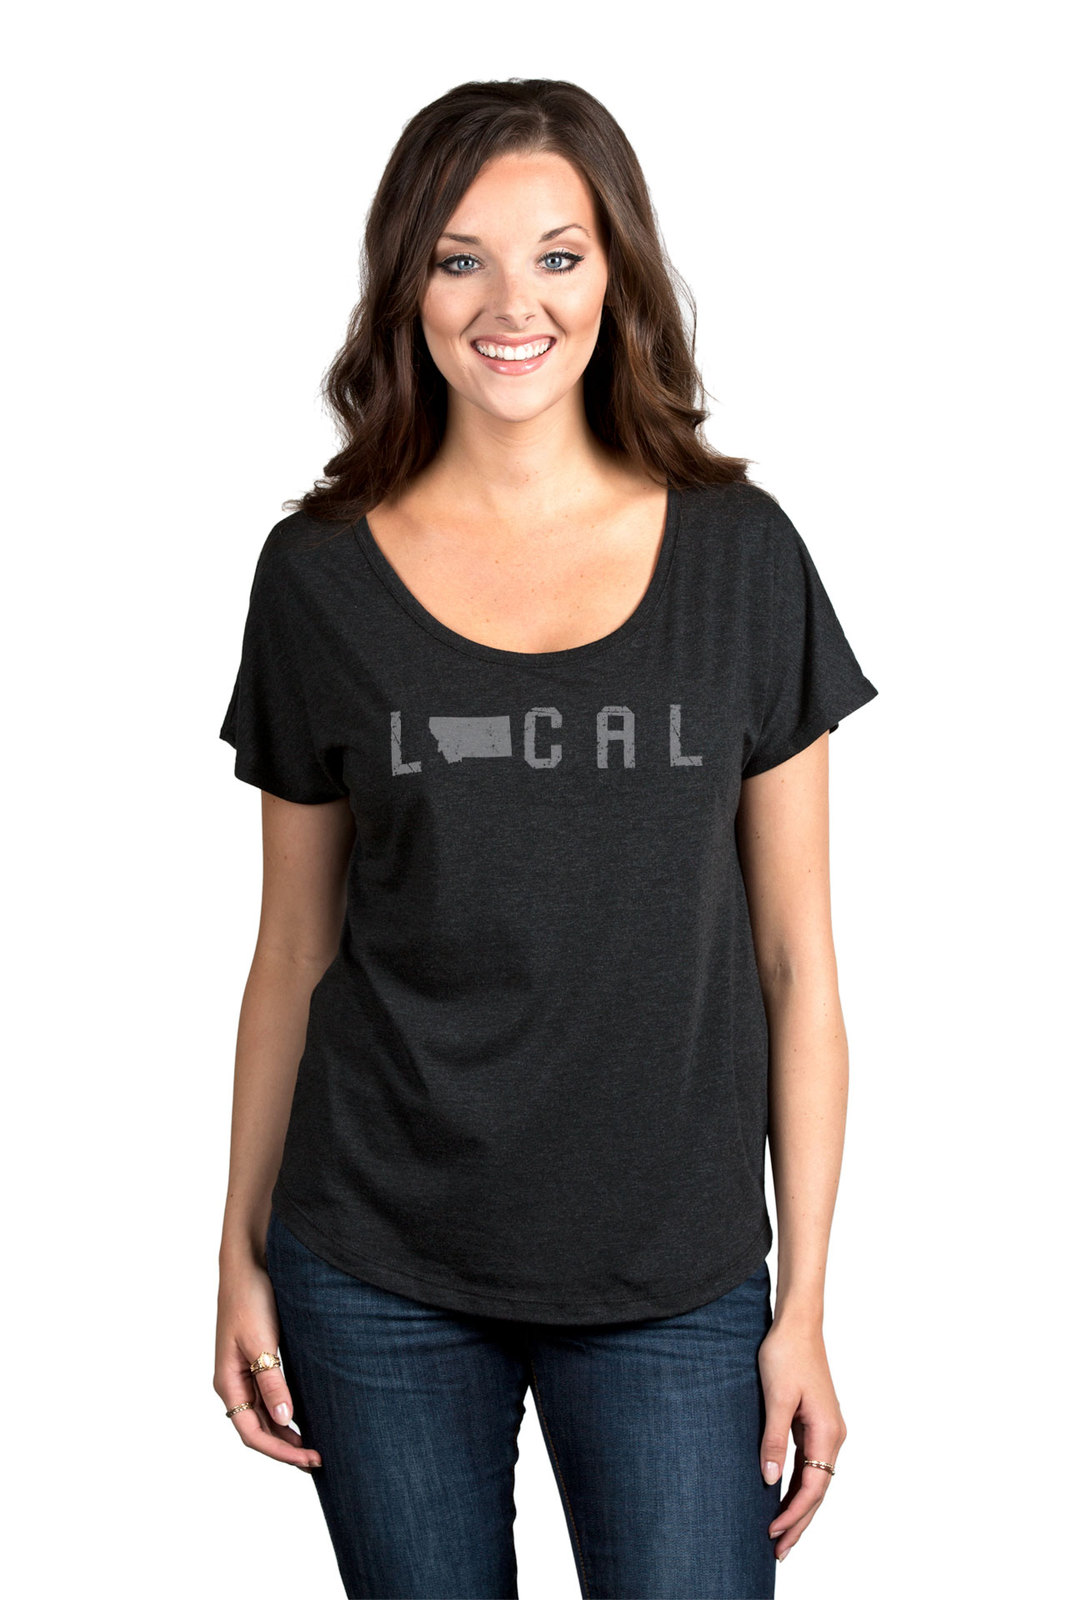 Thread Tank Local Montana State Women's Slouchy Dolman T-Shirt Tee Heather Black